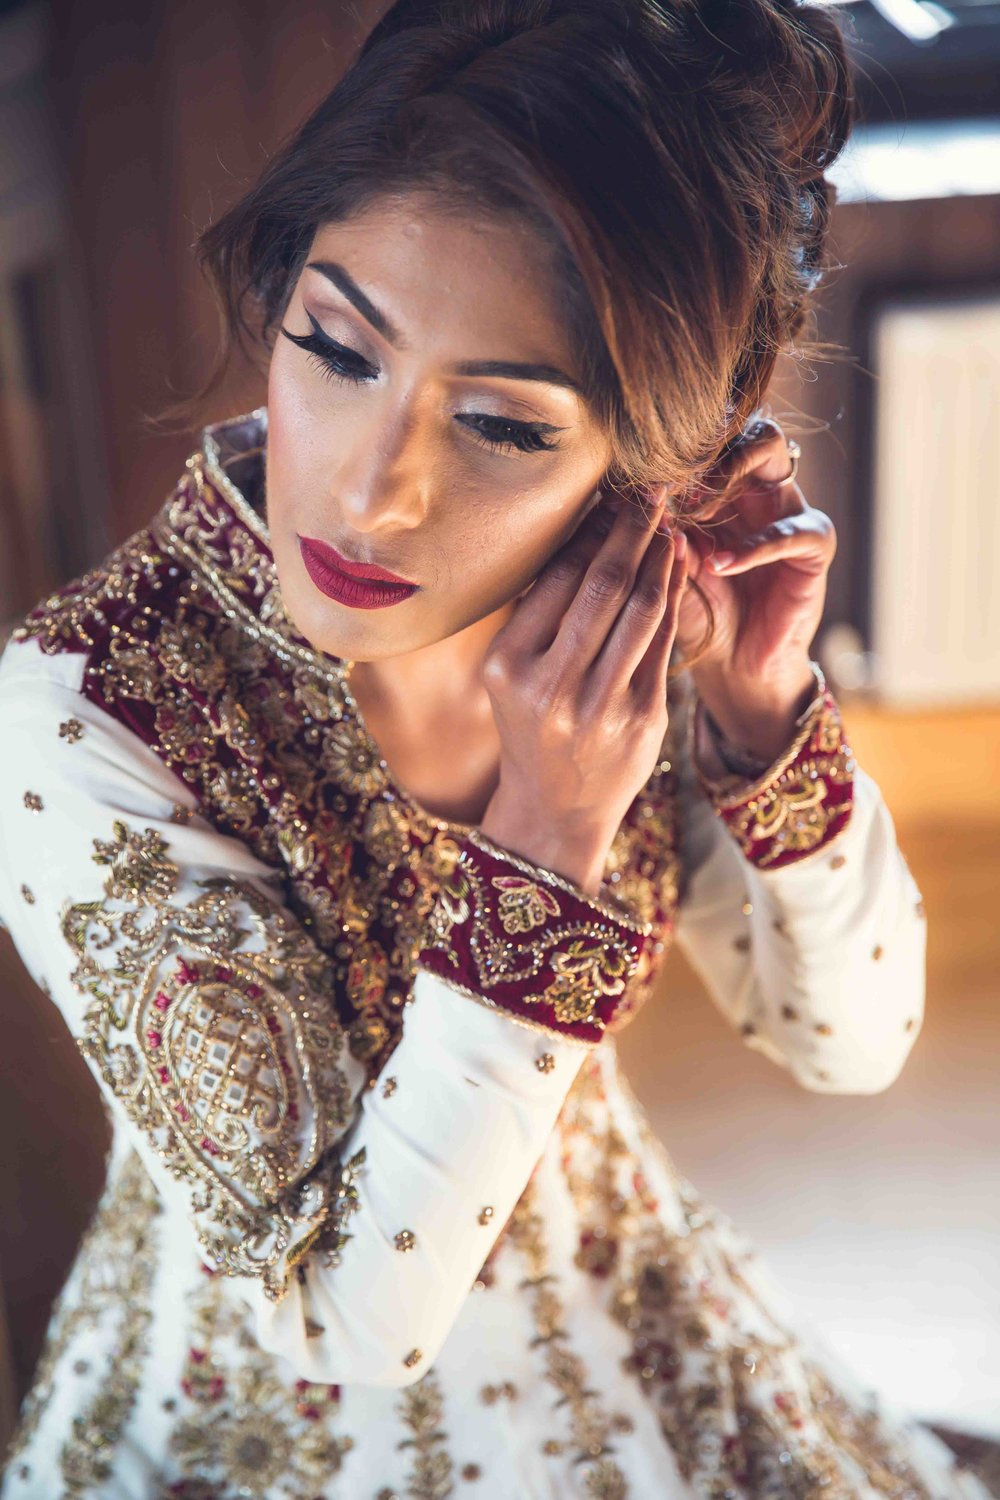 Asian Wedding Photographer Opu Sultan Photography Lyme Park Scotland Edinburgh Glasgow London Manchester Liverpool Birmingham Wedding Photos prewed shoot Azman & Saira Blog-46.jpg